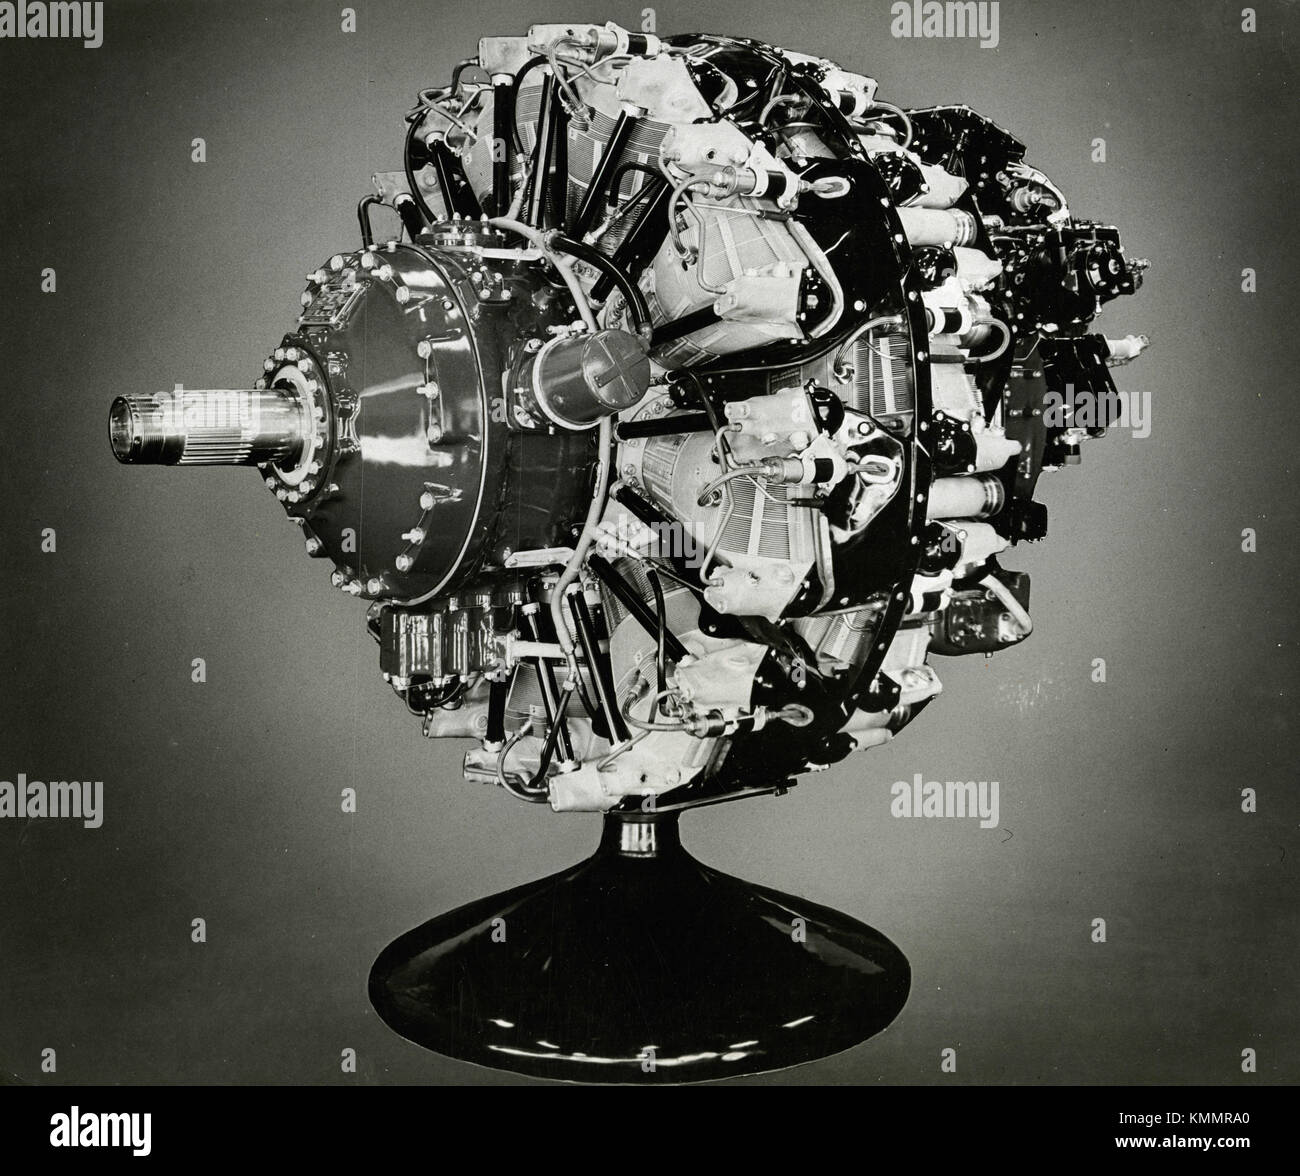 Rolls-Royce aviation engine NENE jet propulsion, UK 1946 - Stock Image